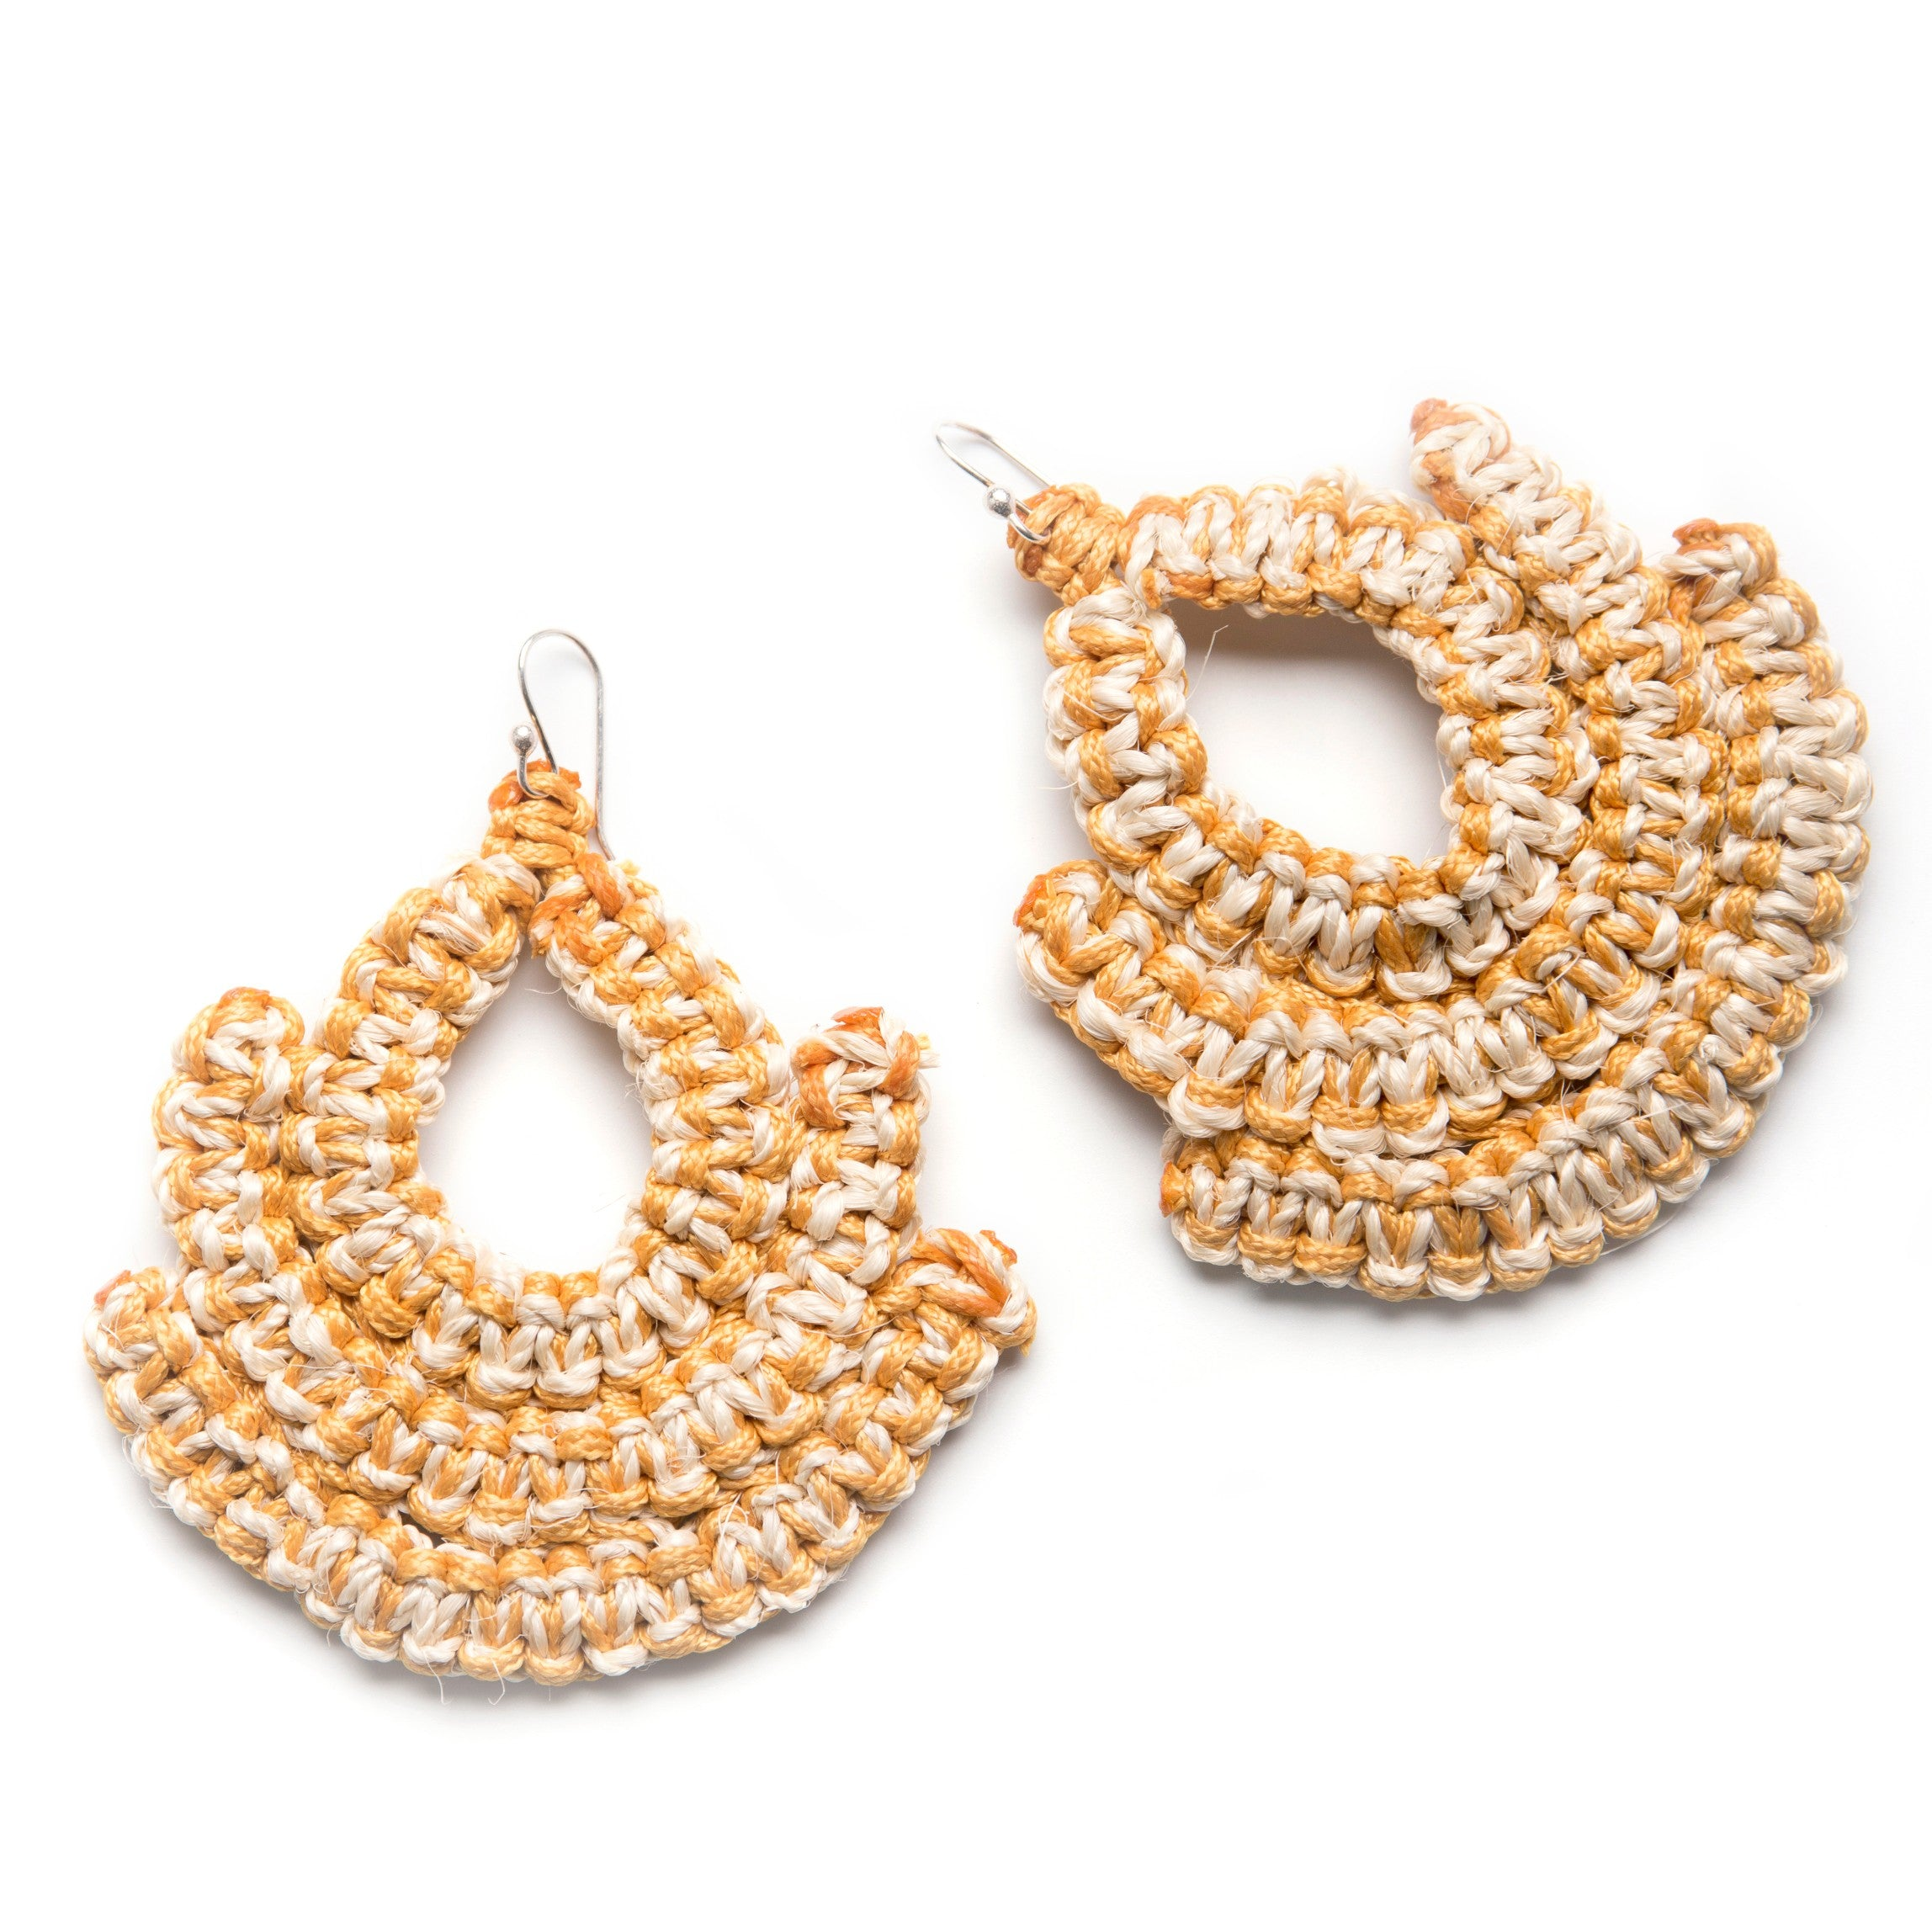 Aretes GUERRERA by Caralarga